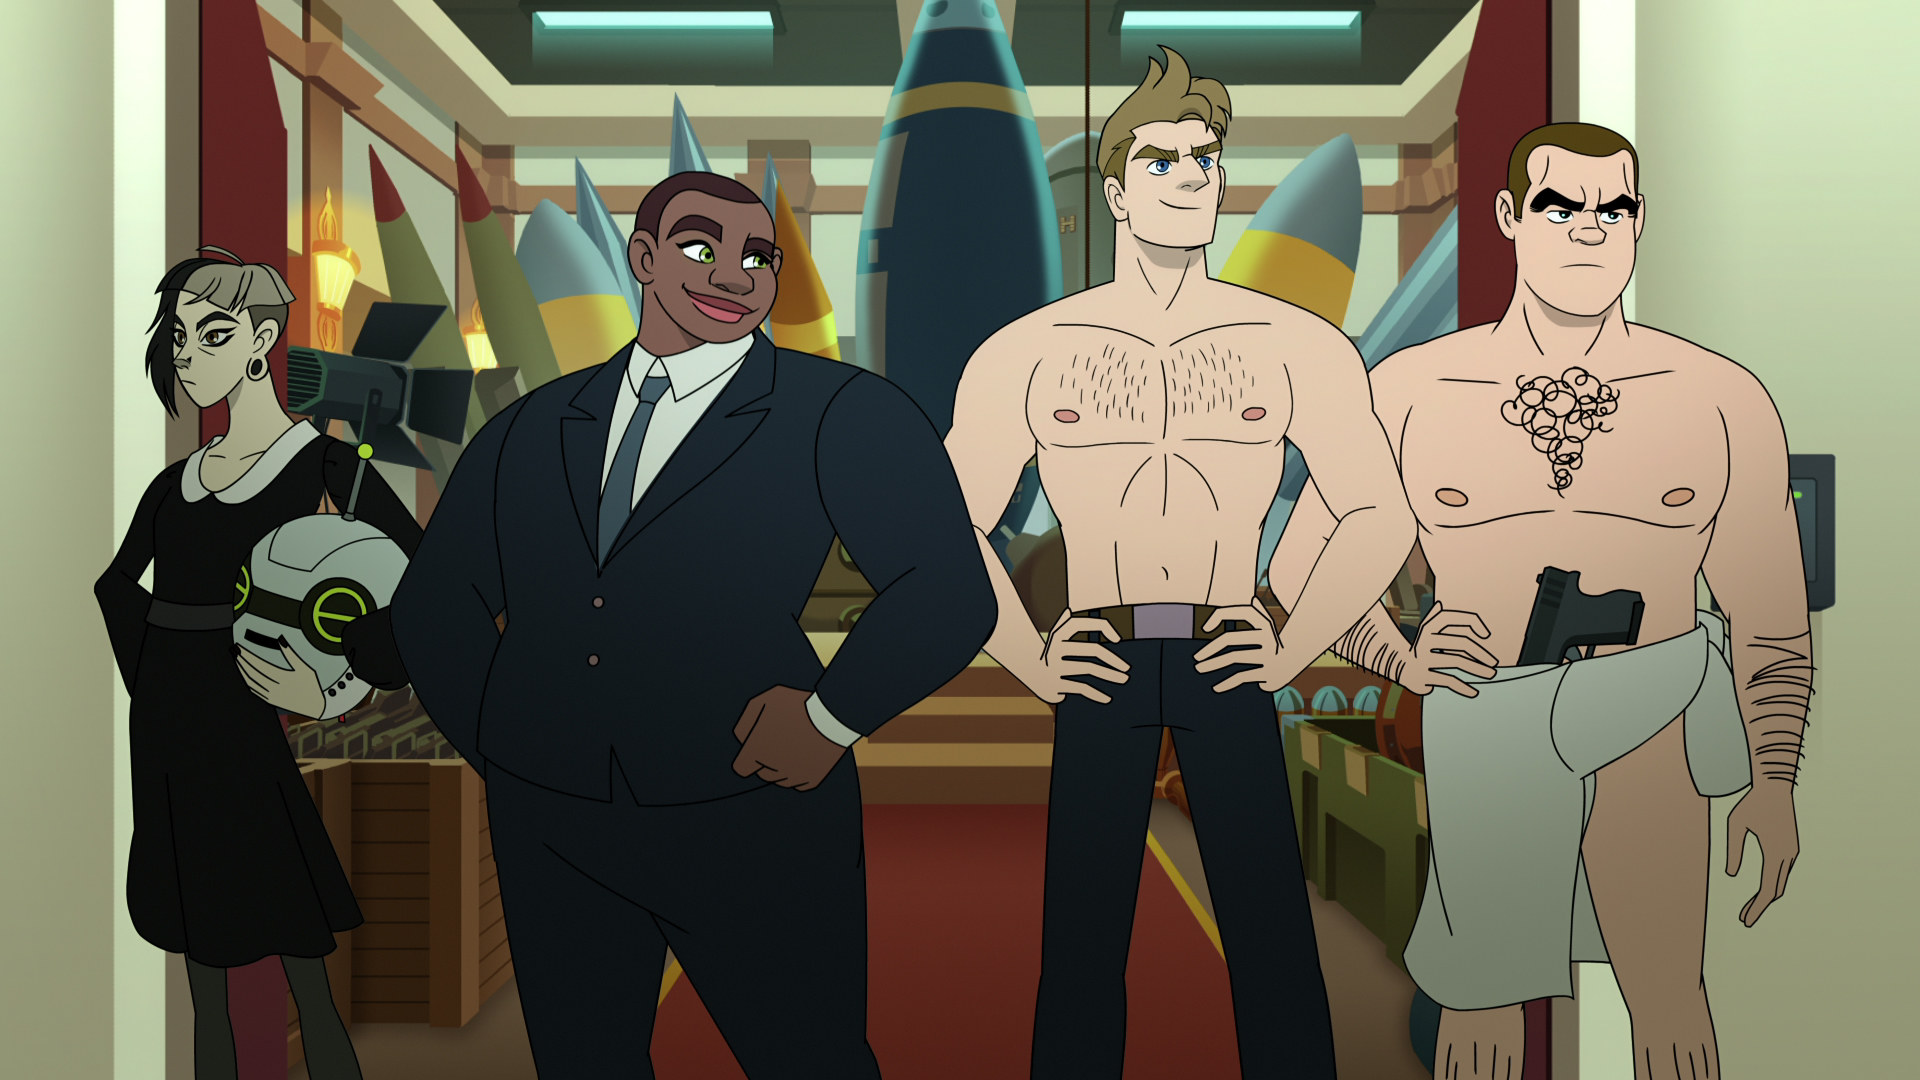 Q-Force : Sean Hayes on bringing  gay James Bond  to Netflix with animated spy comedy